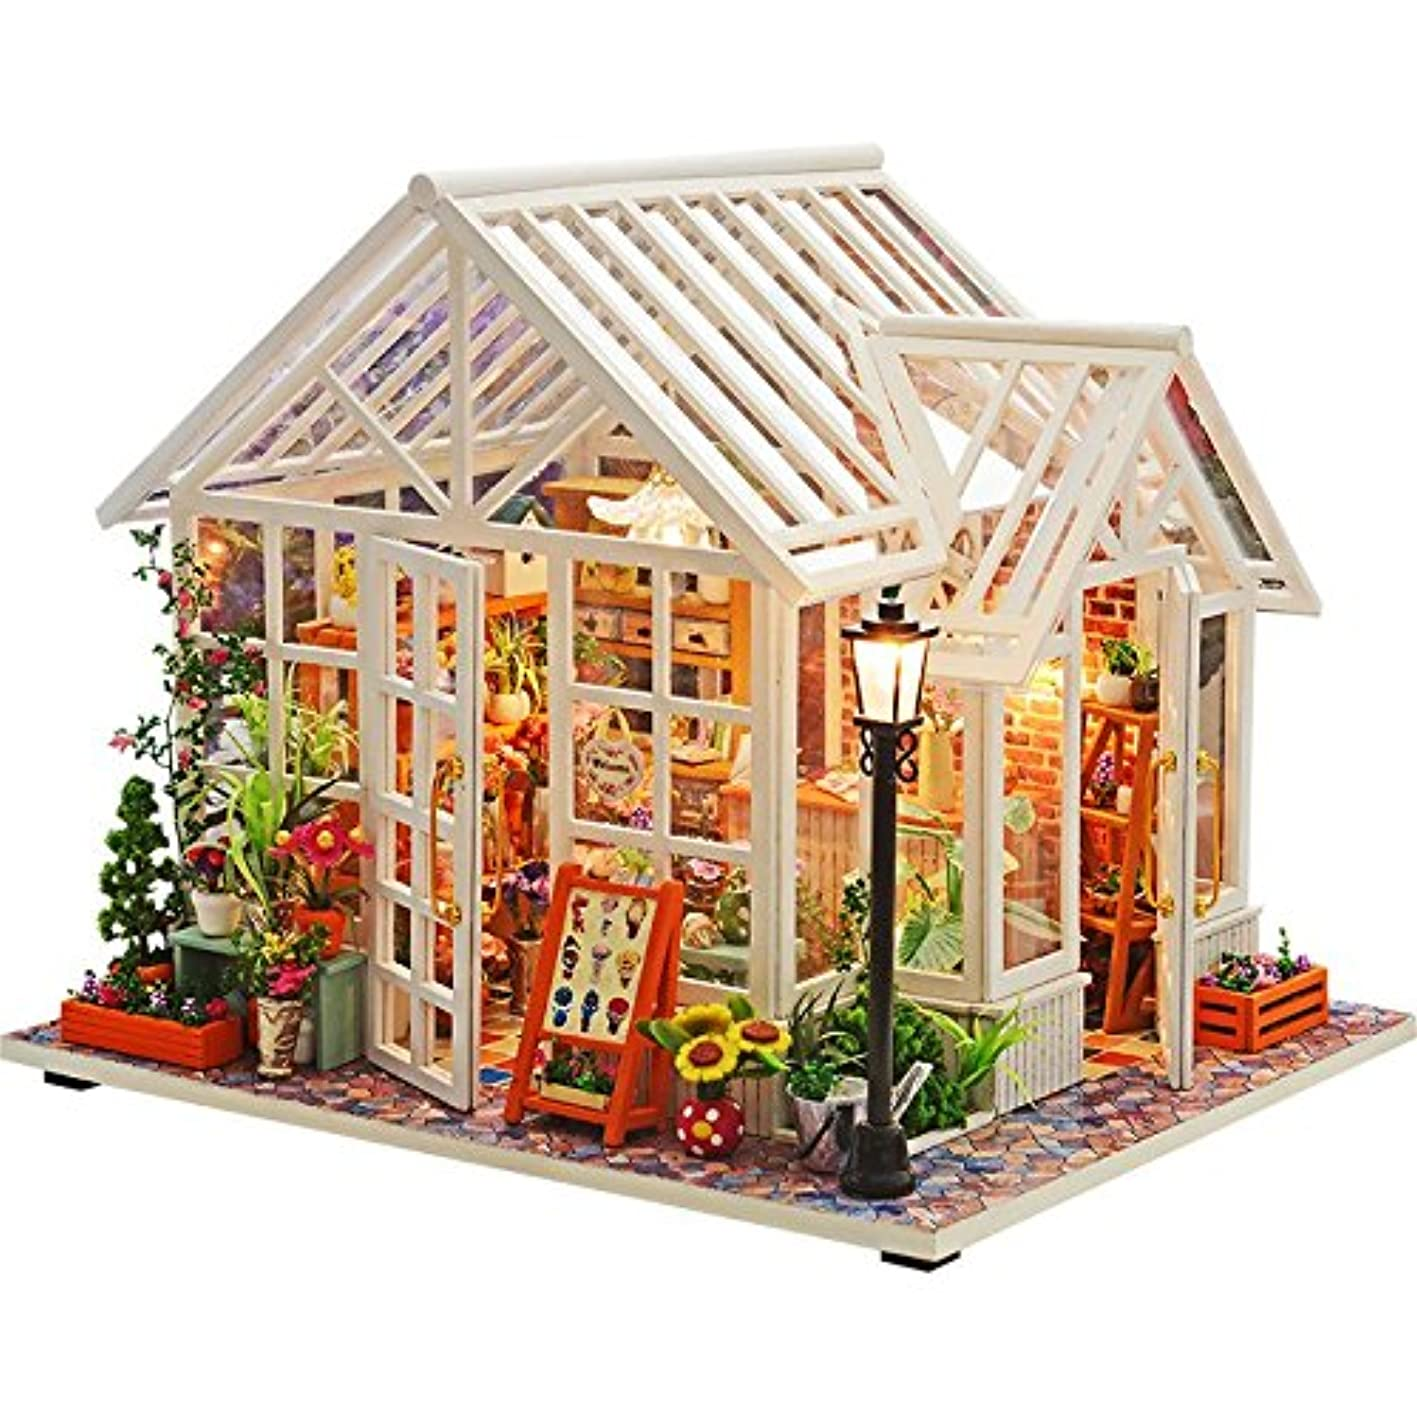 WYD DIY Flower Shop Miniature Dollhouse,Handmade Wooden Furniture Kits Doll House sglmuofuxxg992